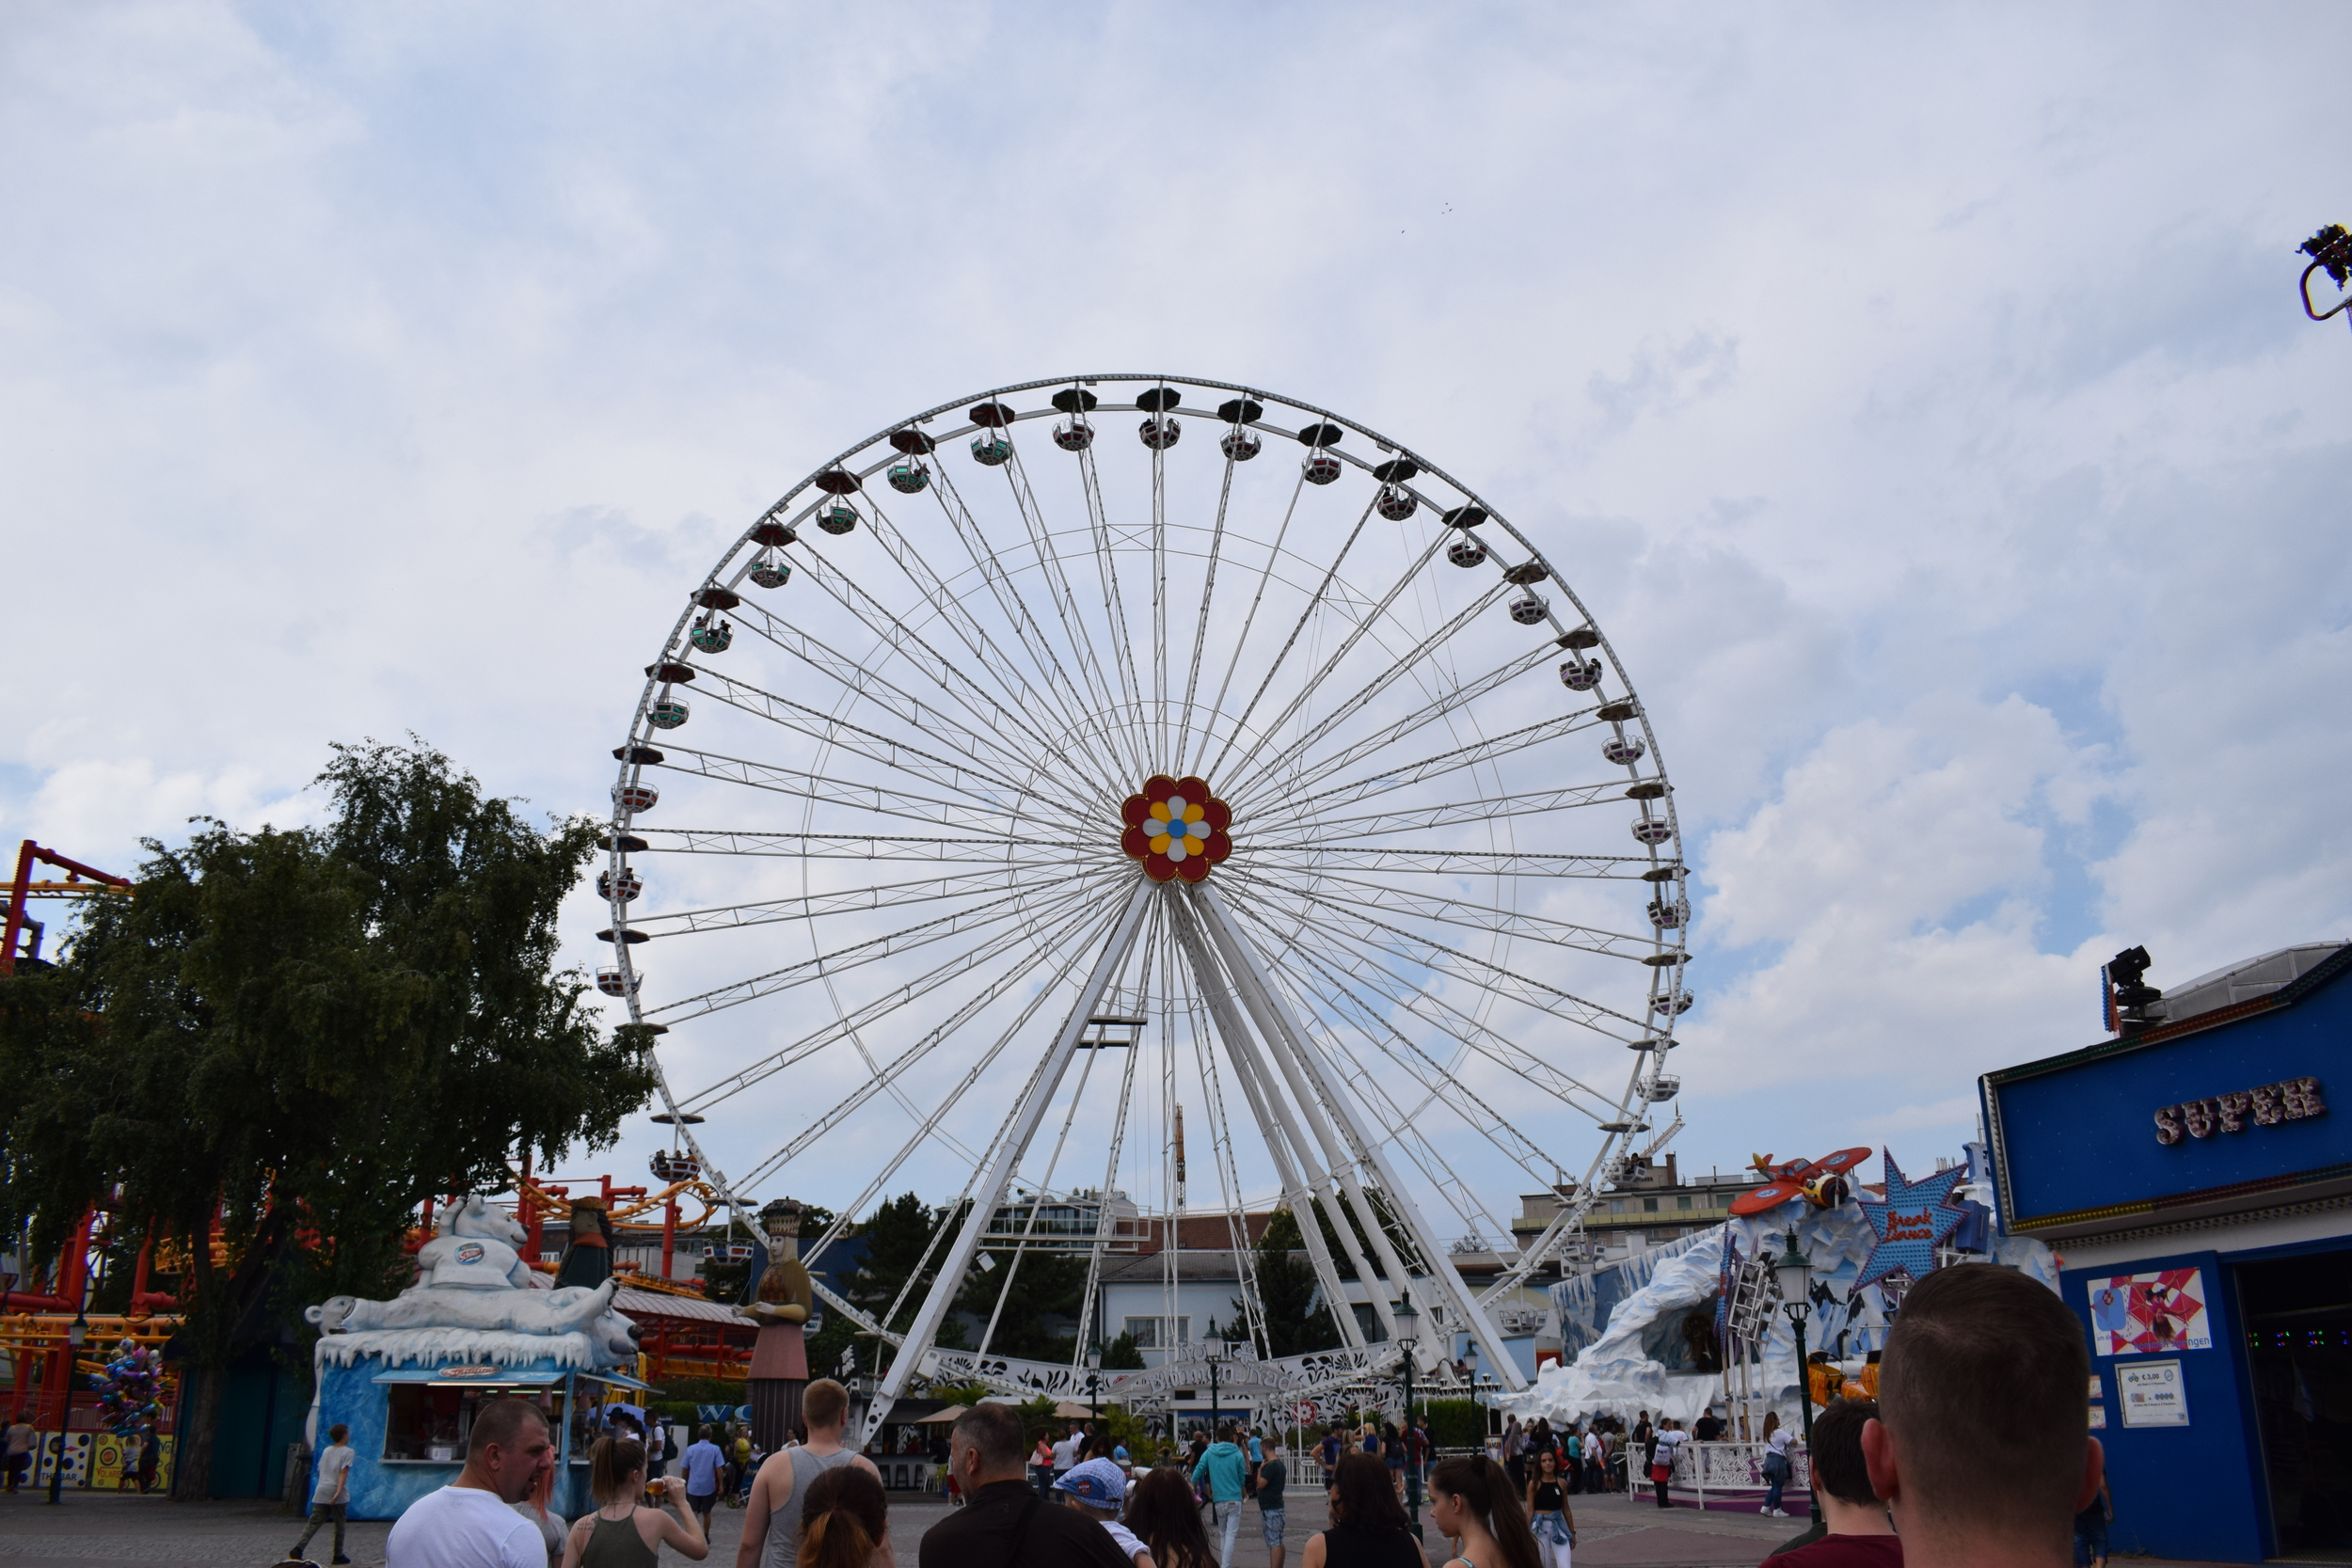 The ferris wheel that we rode.